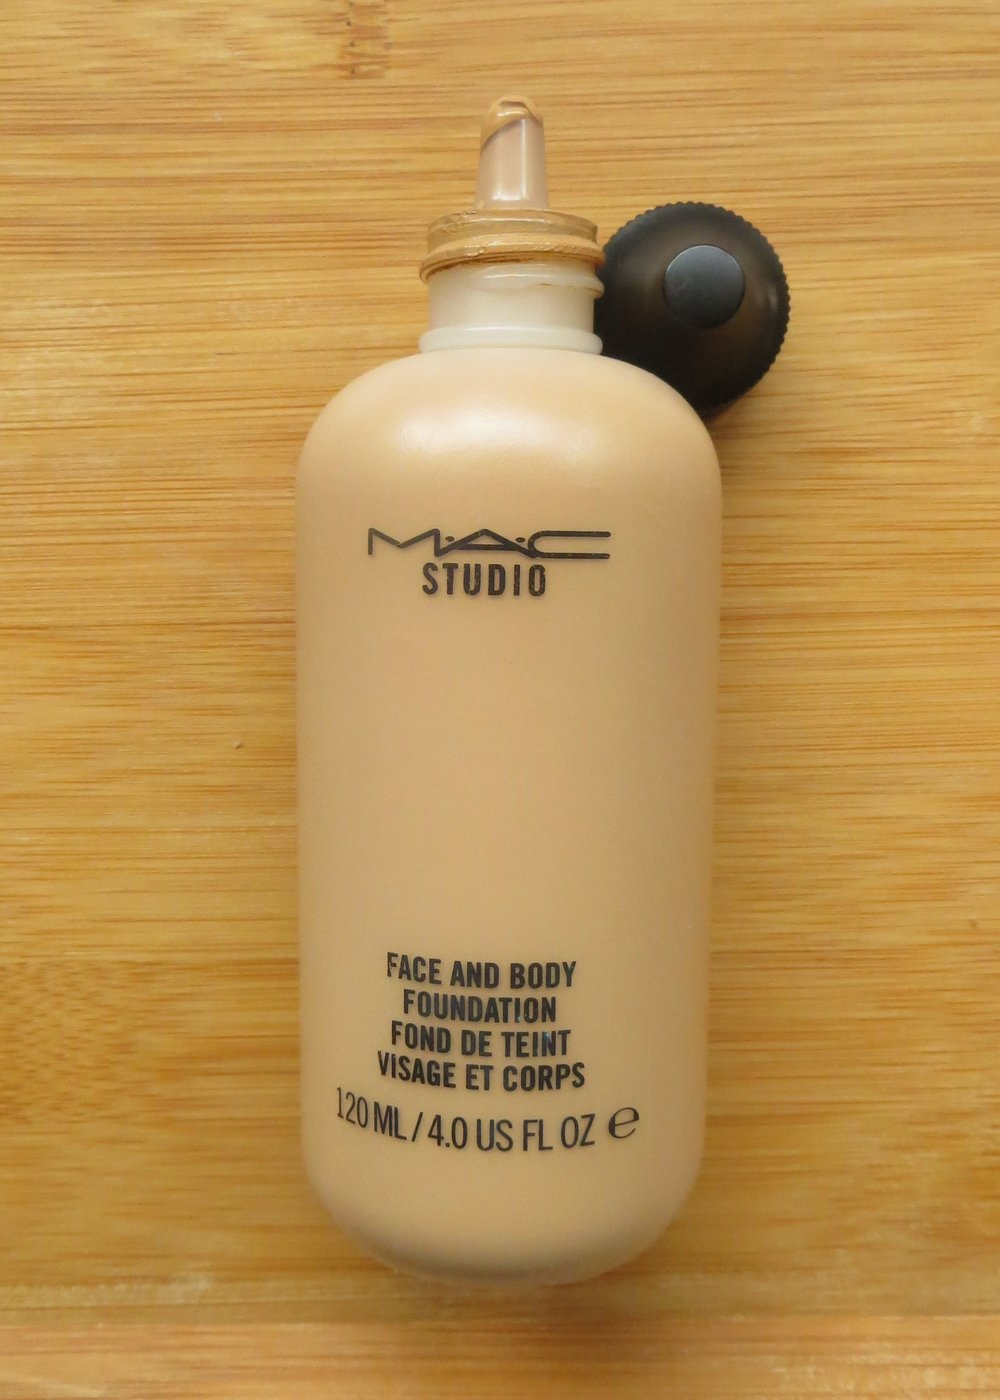 Studio Face & Body Foundation - An ingenious product. It is another emollient one, that does not dry my skin out and feels comfortable, which is quite a feat. It is sheer in coverage but you can definitely layer this one. You can use a brush but if you rub the foundation between your fingers it will turn into a cream that I then pat onto my skin (like when you whip double cream, it will suddenly change consistency). If you have seen the video of Mary Greenwell slapping a model's face with this, it's the same principle of working the product - but less violent. I also use this to cover leg scars by applying directly onto the skin and rubbing it in. It is hard to find a moisturising foundation that doesn't just slide off and is buildable, this really is an amazing product. It comes in a squeezy nozzle bottle that, quite frankly, all foundations should come in. The only issue is with shades as there are 12 to choose from and I believe it is designed to be mixed to customize to your shade but that makes it more expensive and doesn't mean you will be able to create a shade deep enough (there is a white version but not a deep dark brown one). I use C6 which could be too light in the summer but I can deepen it with my Nip + Fab Foundation Dark Mixer.